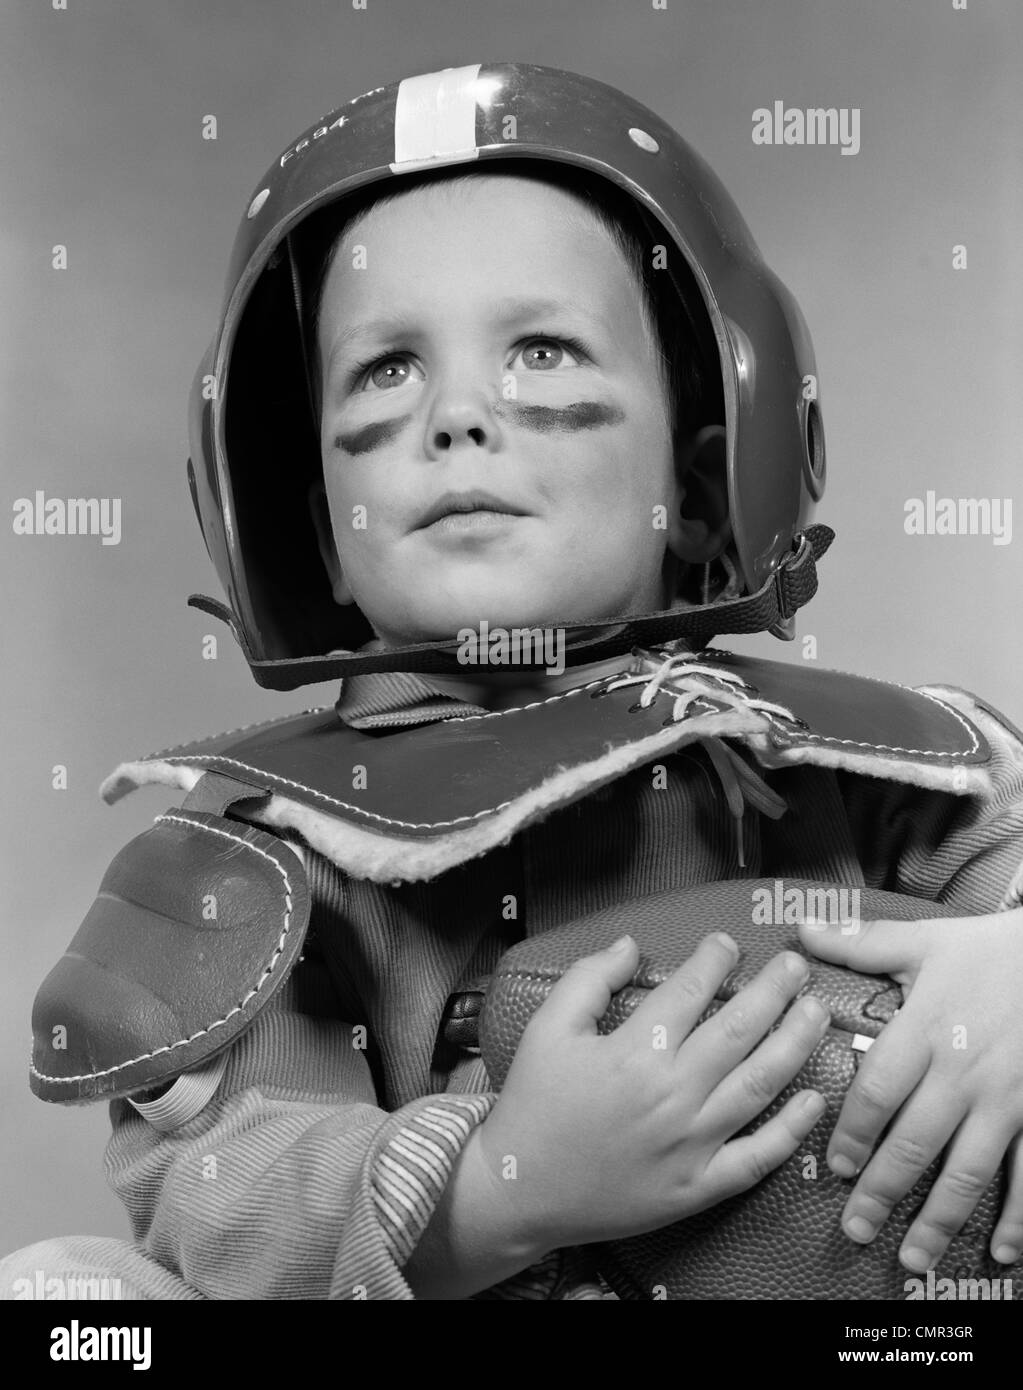 1950s PORTRAIT OF BOY IN HELMET & SHOULDER PADS WEARING GREASE PAINT UNDER EYES & HOLDING FOOTBALL - Stock Image